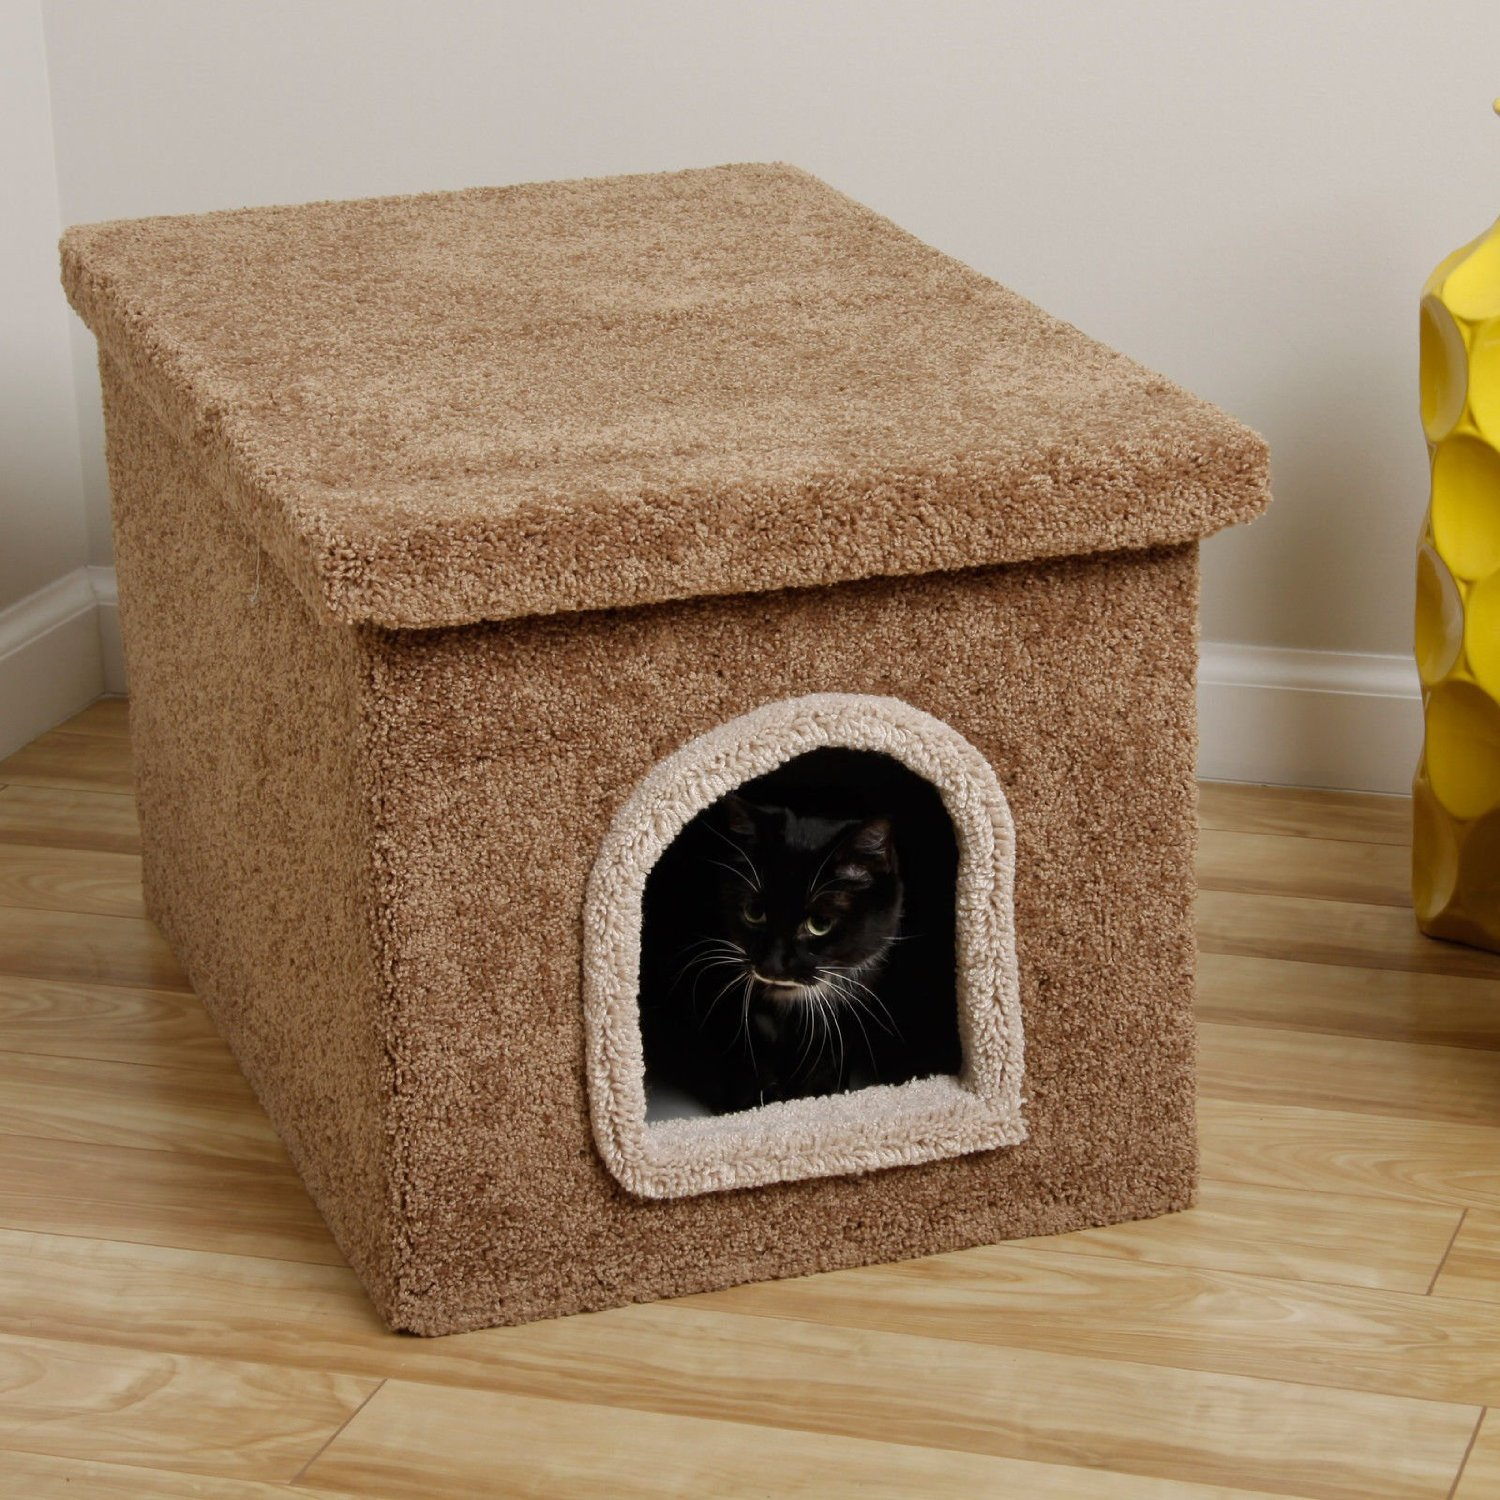 Cat House Made Of Boxes